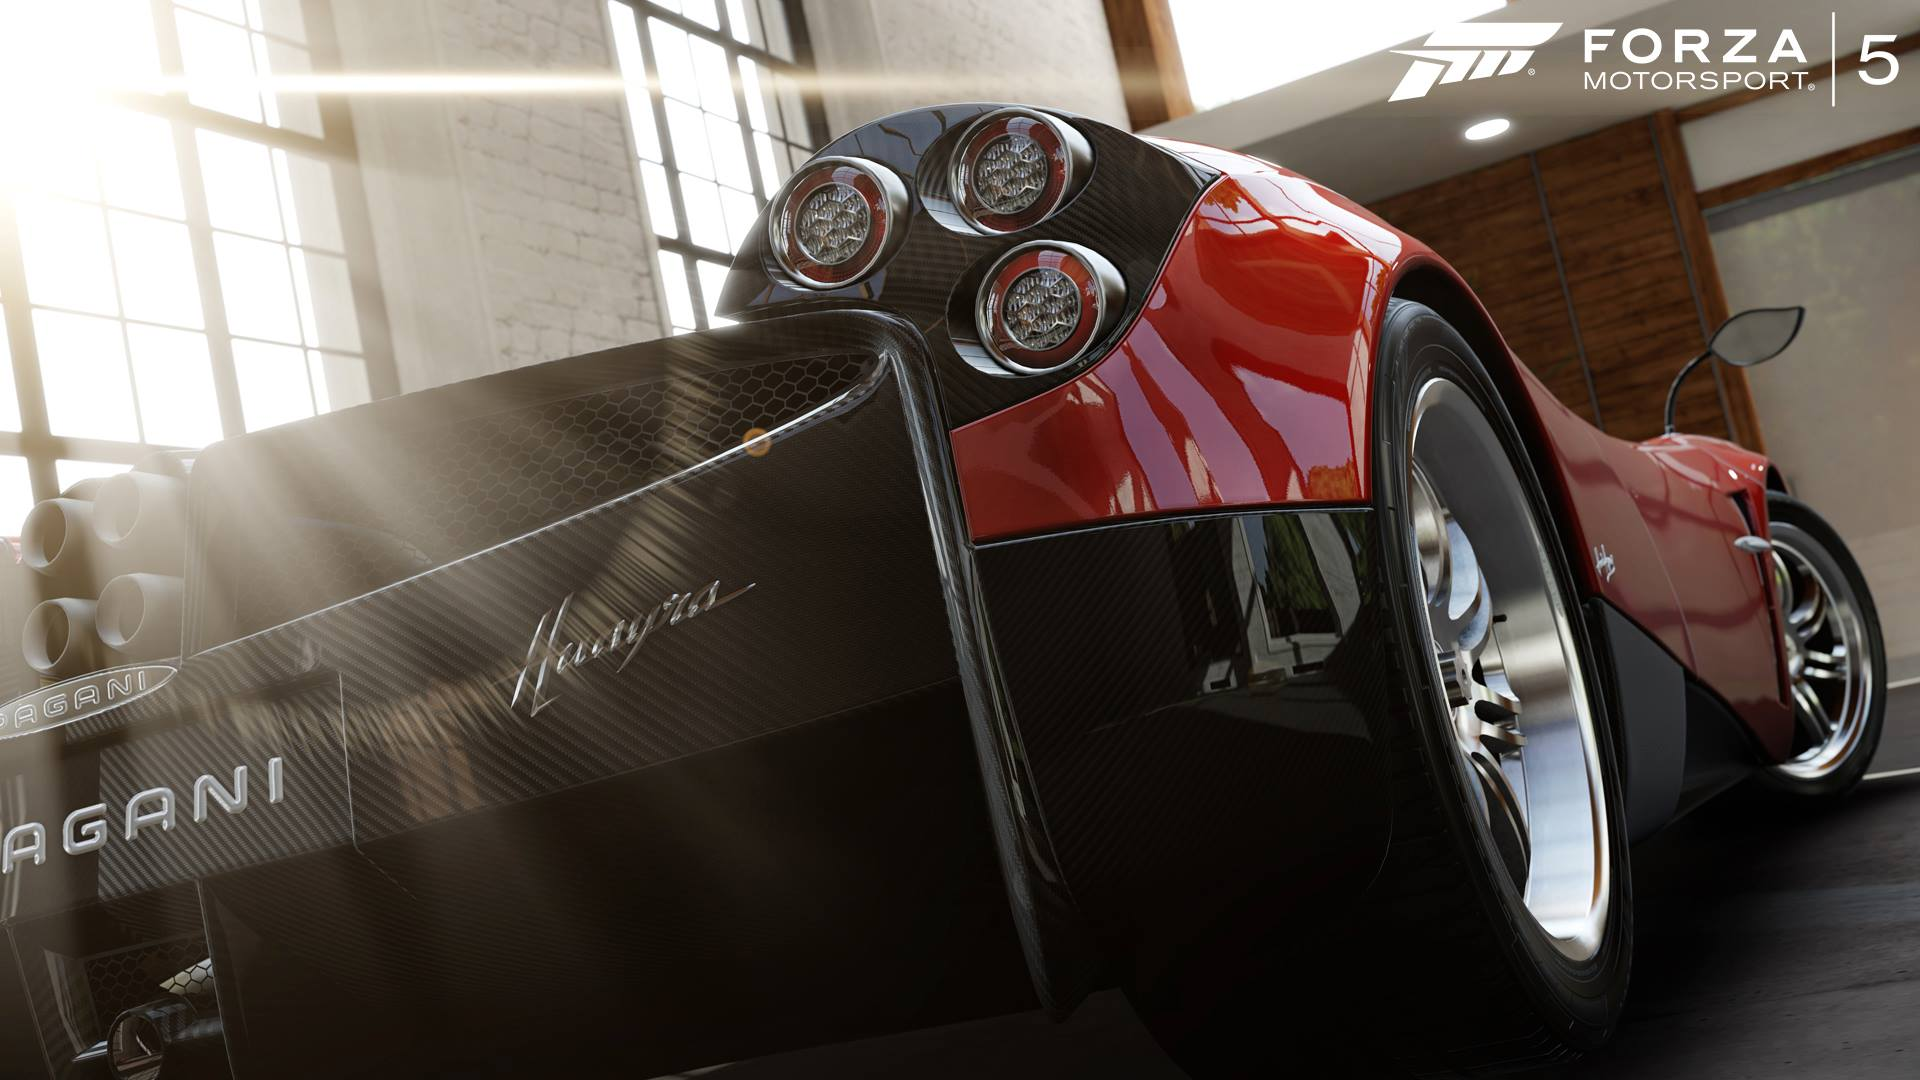 No weather, day/night cycles or Auction Houses for Forza 5?